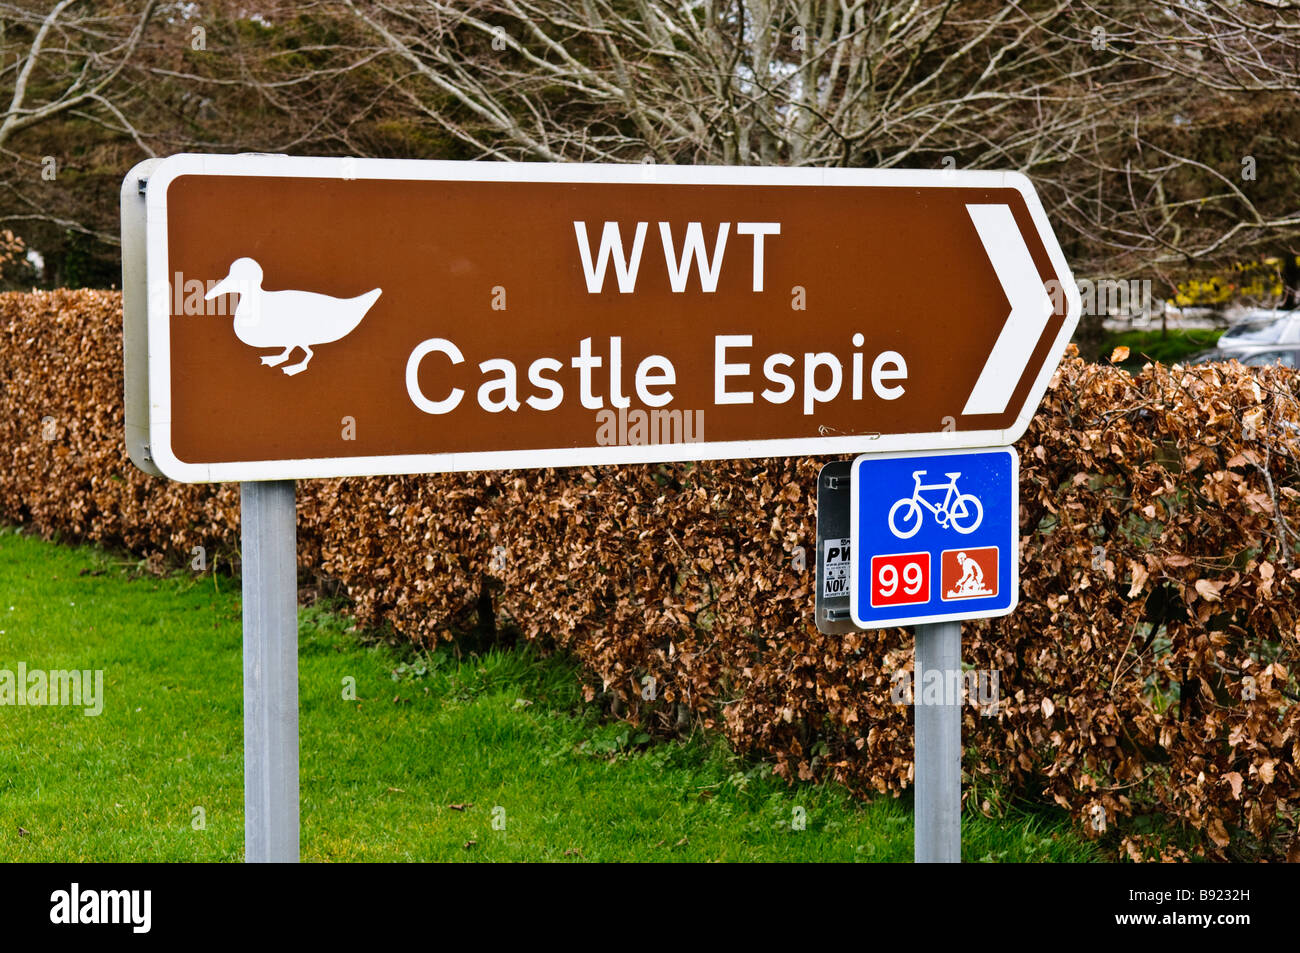 Sign at front entrance to Castle Espie, Wildfowl and Wetlands Trust (WWT), Comber, Northern Ireland - Stock Image